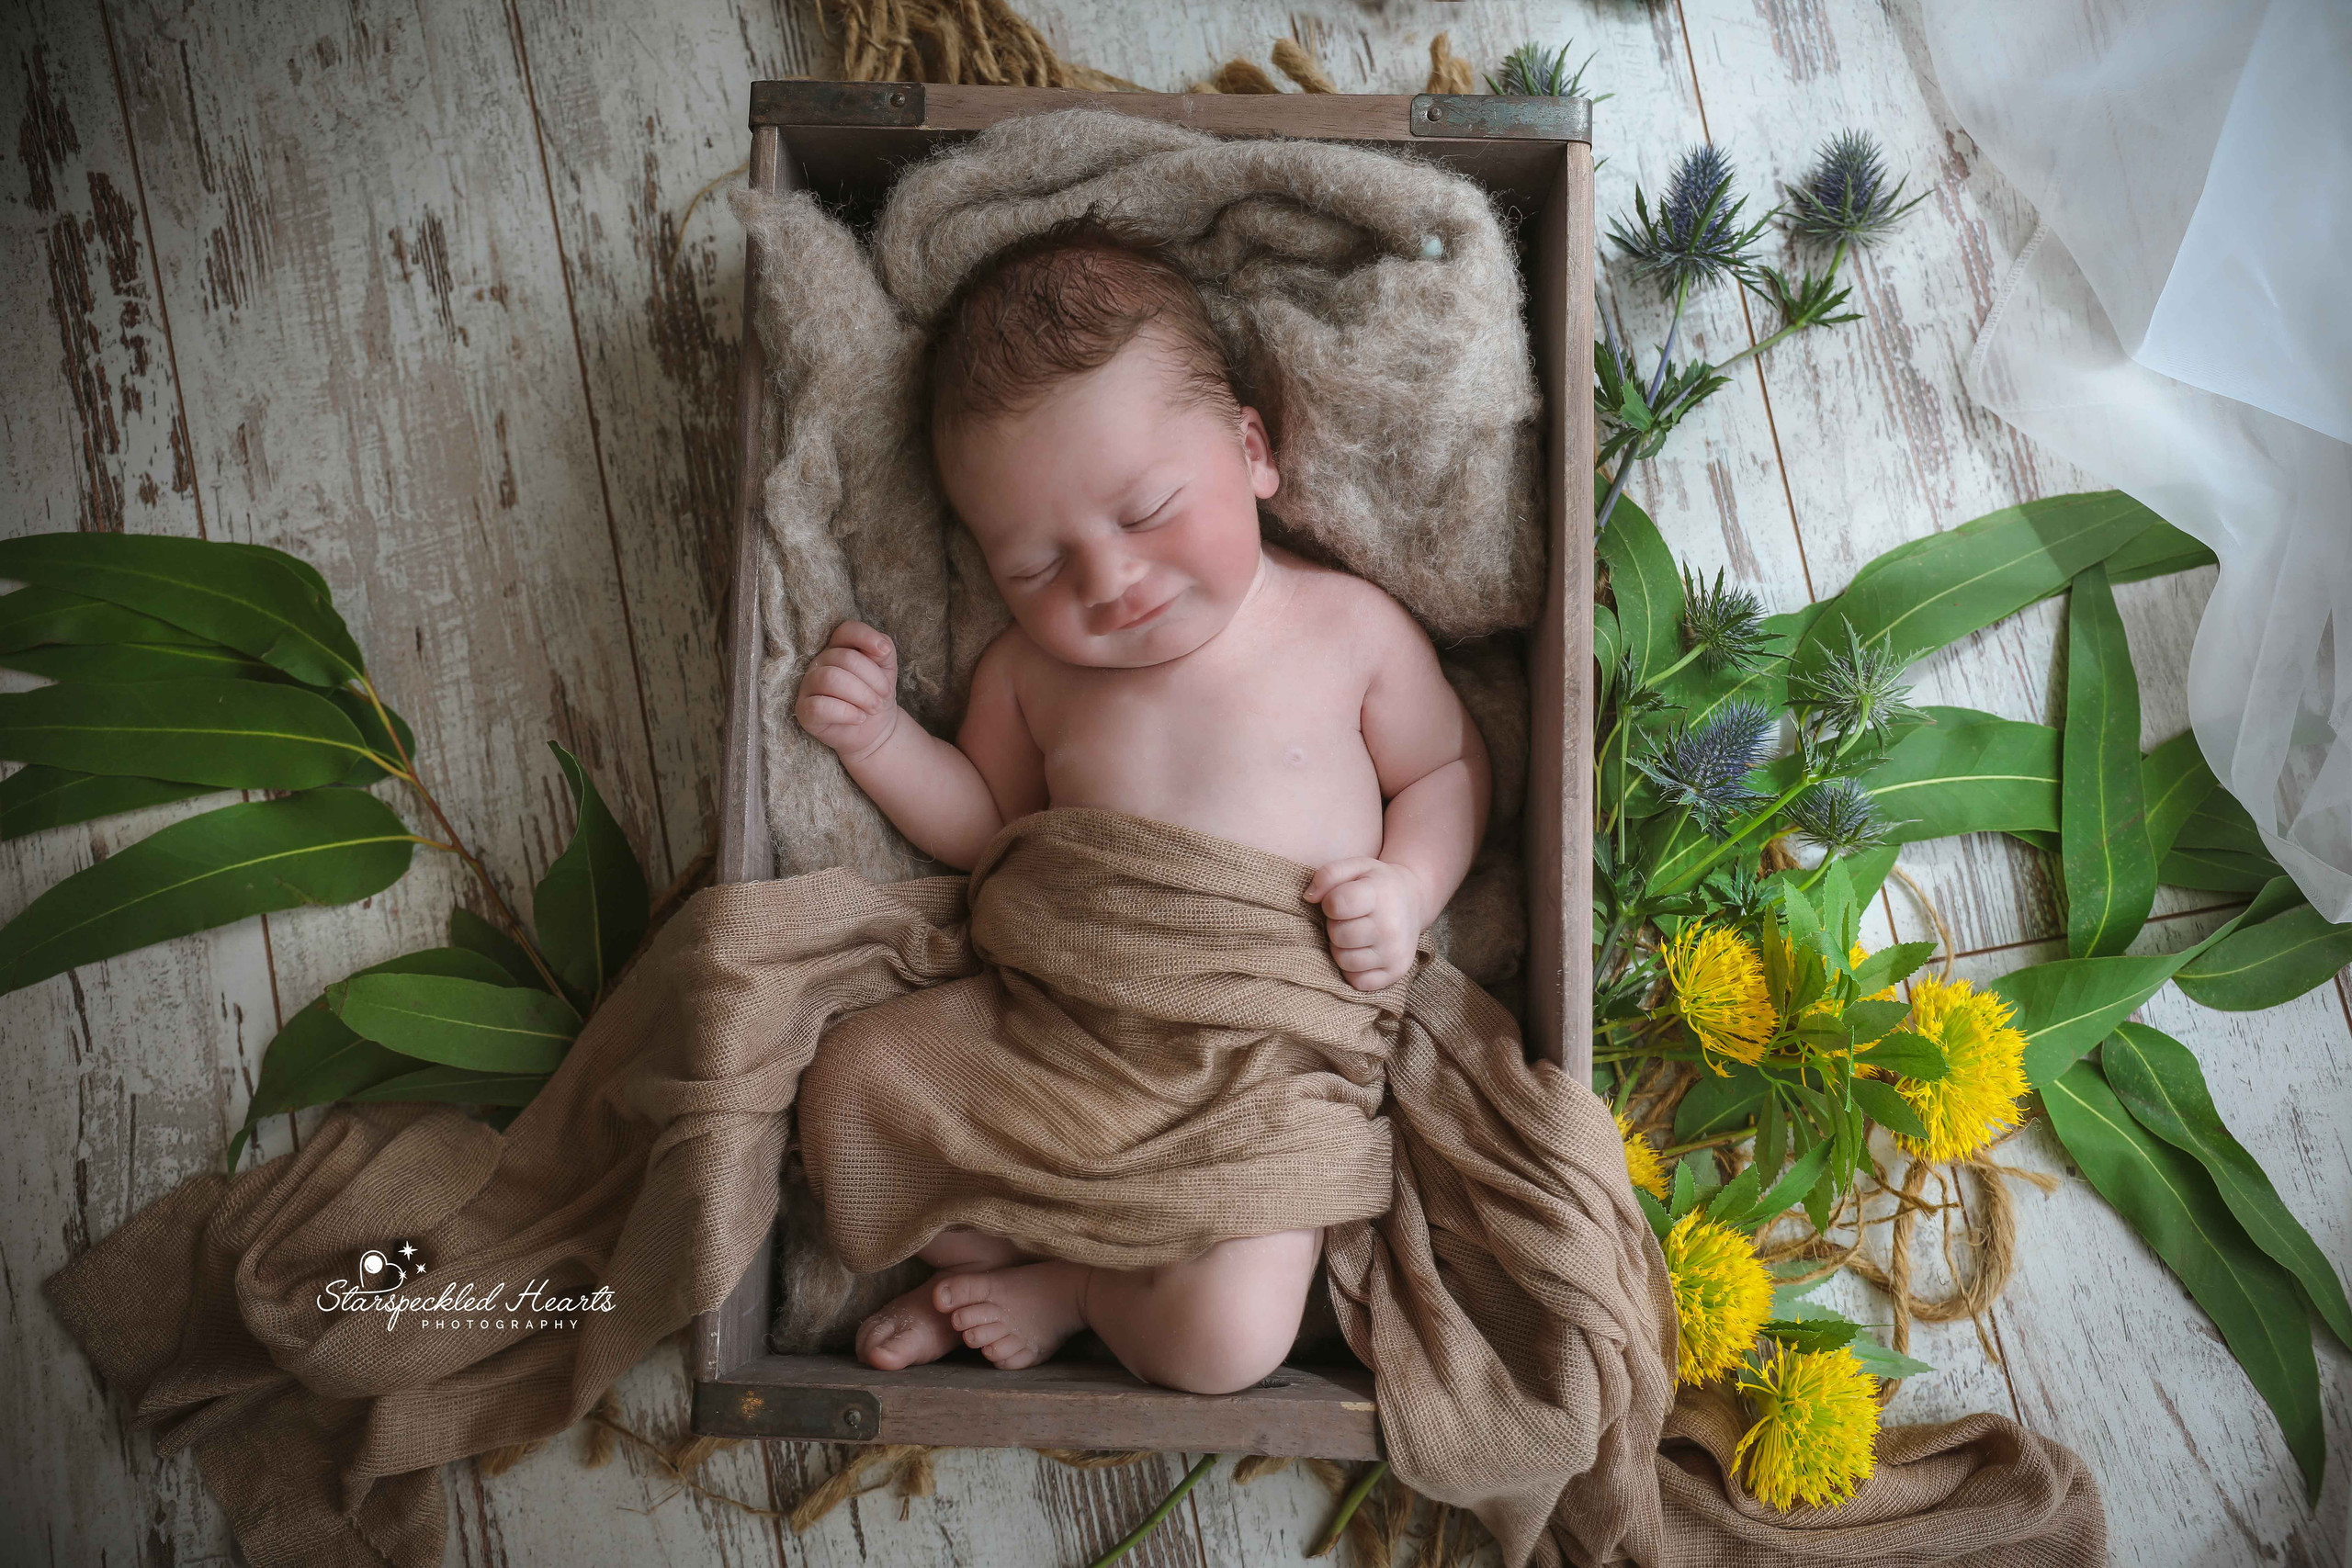 sleeping newborn baby boy laying in a brown wooden crate surrounded by greenery